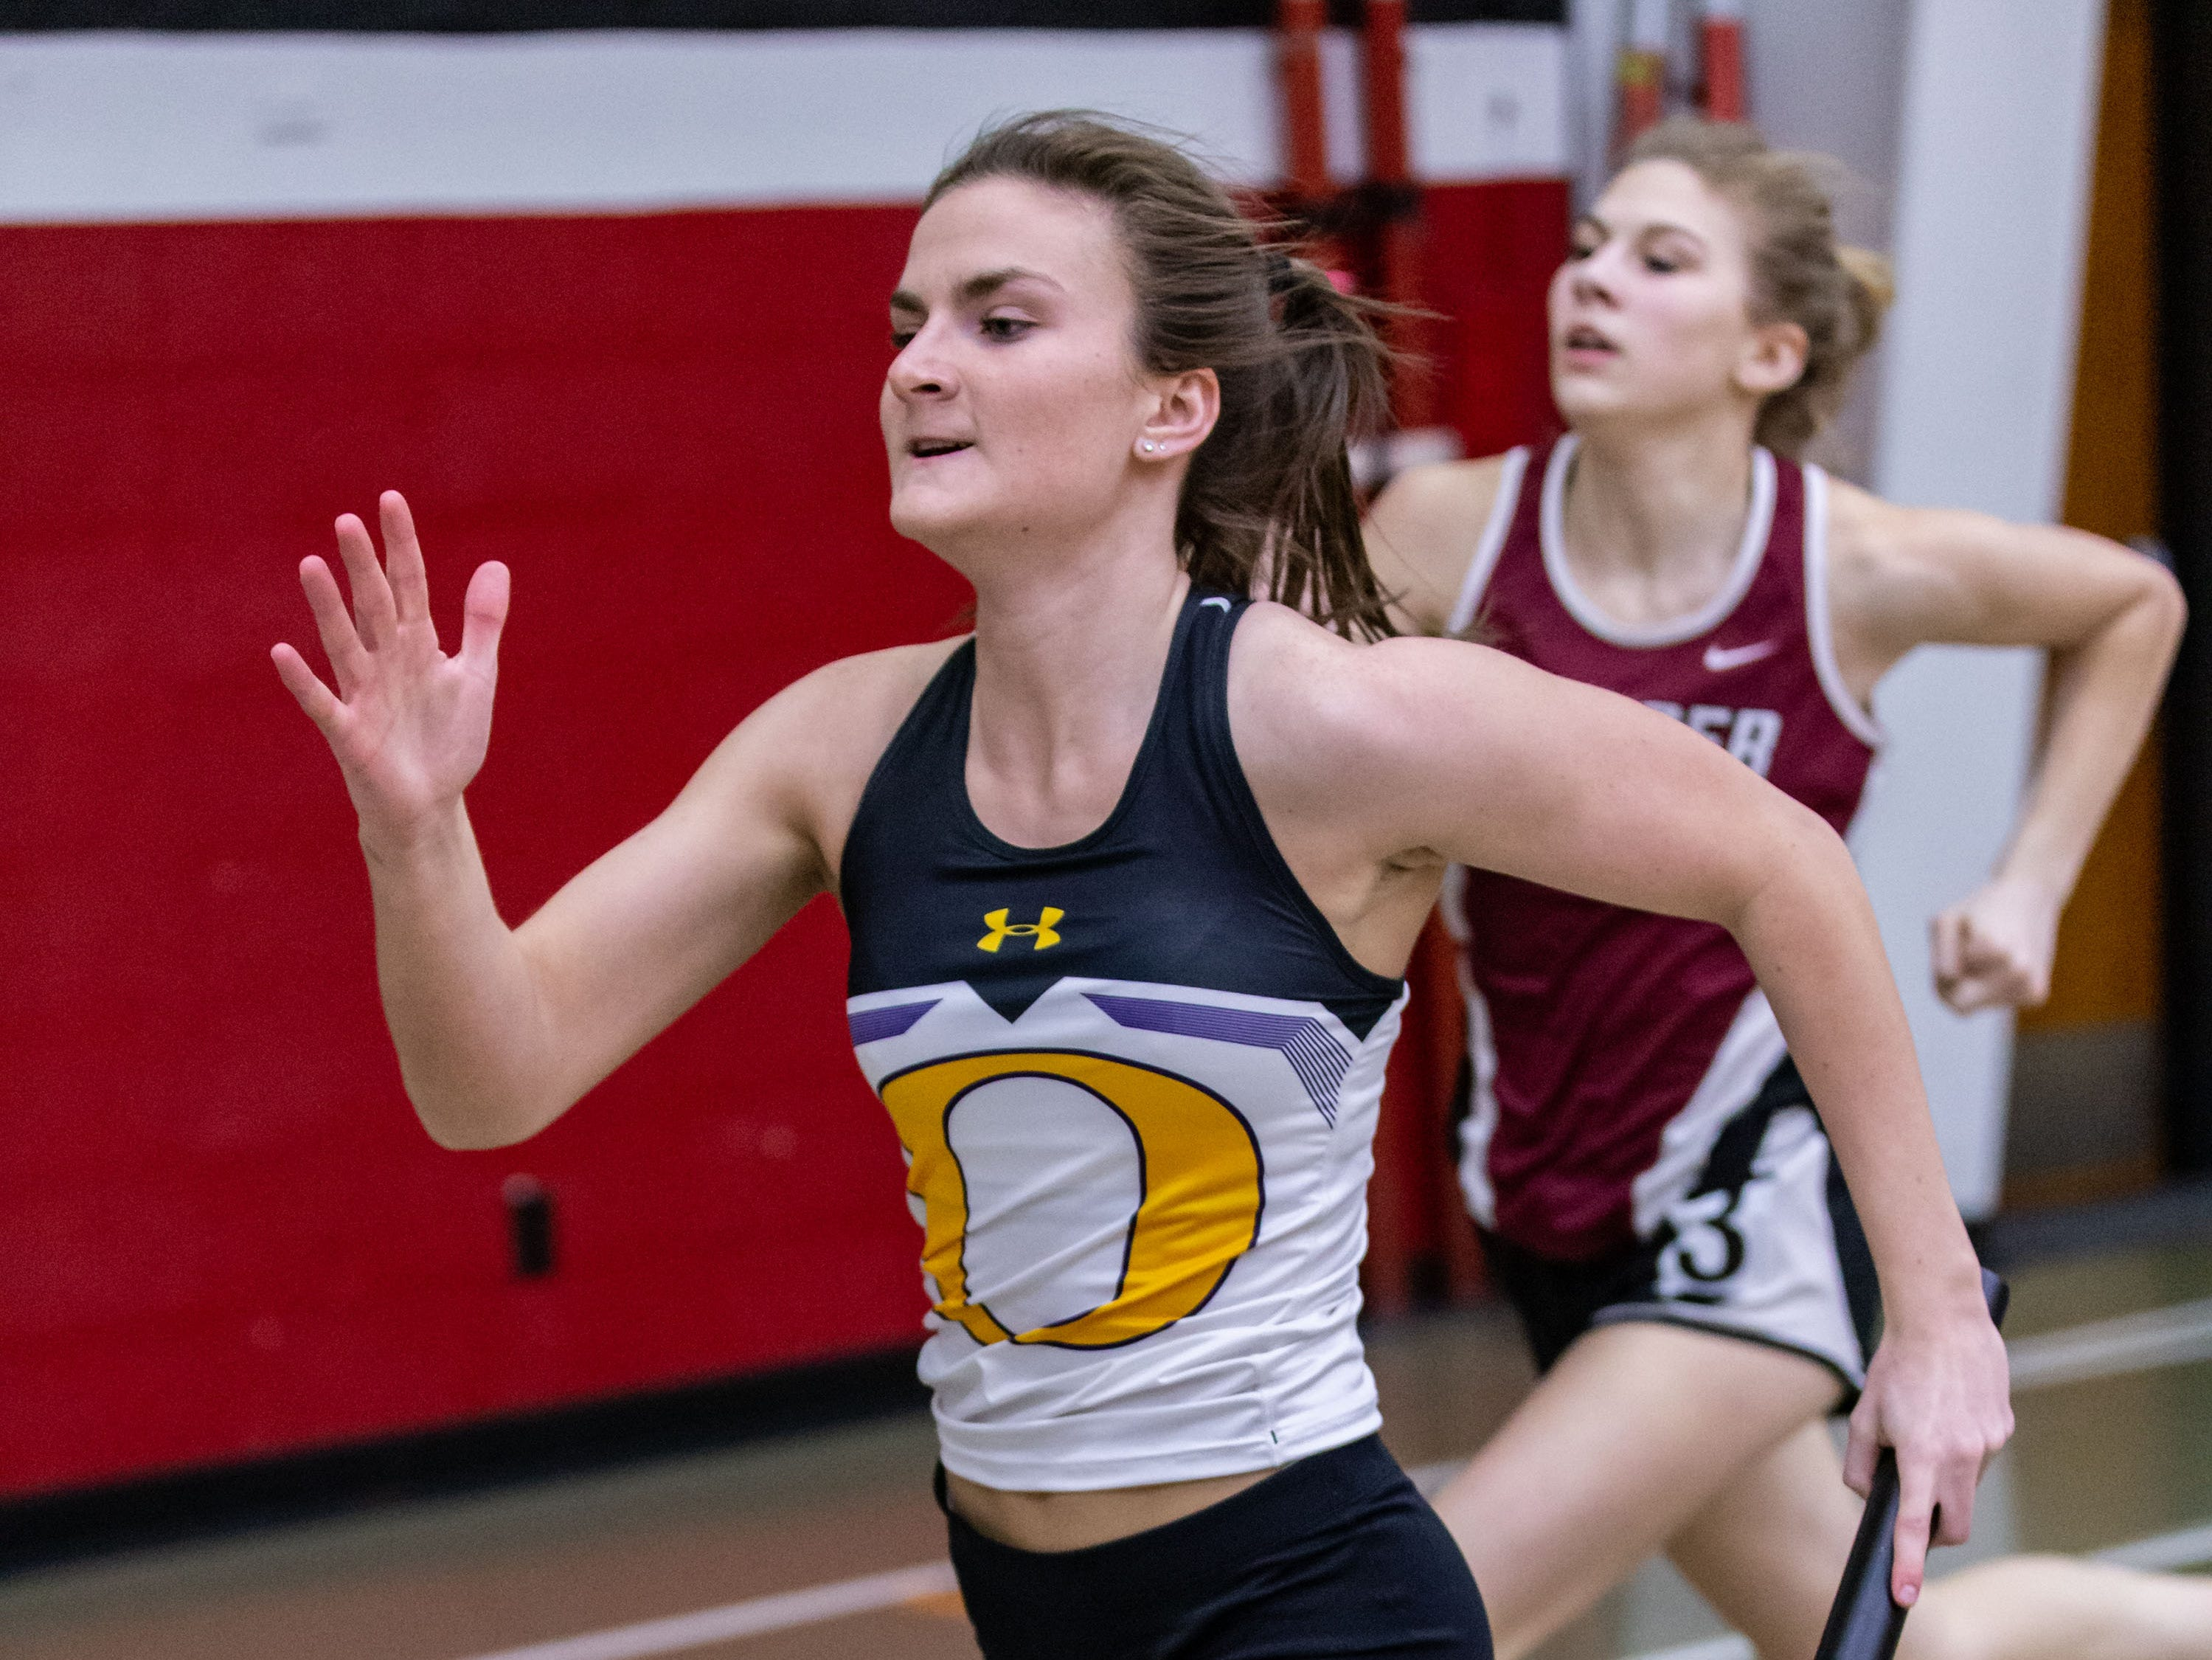 Oconomowoc's Grace Carini competes in the sprint medley relay at the Peter Rempe Cardinal Relays hosted by Waukesha South on Thursday, March 21, 2019.